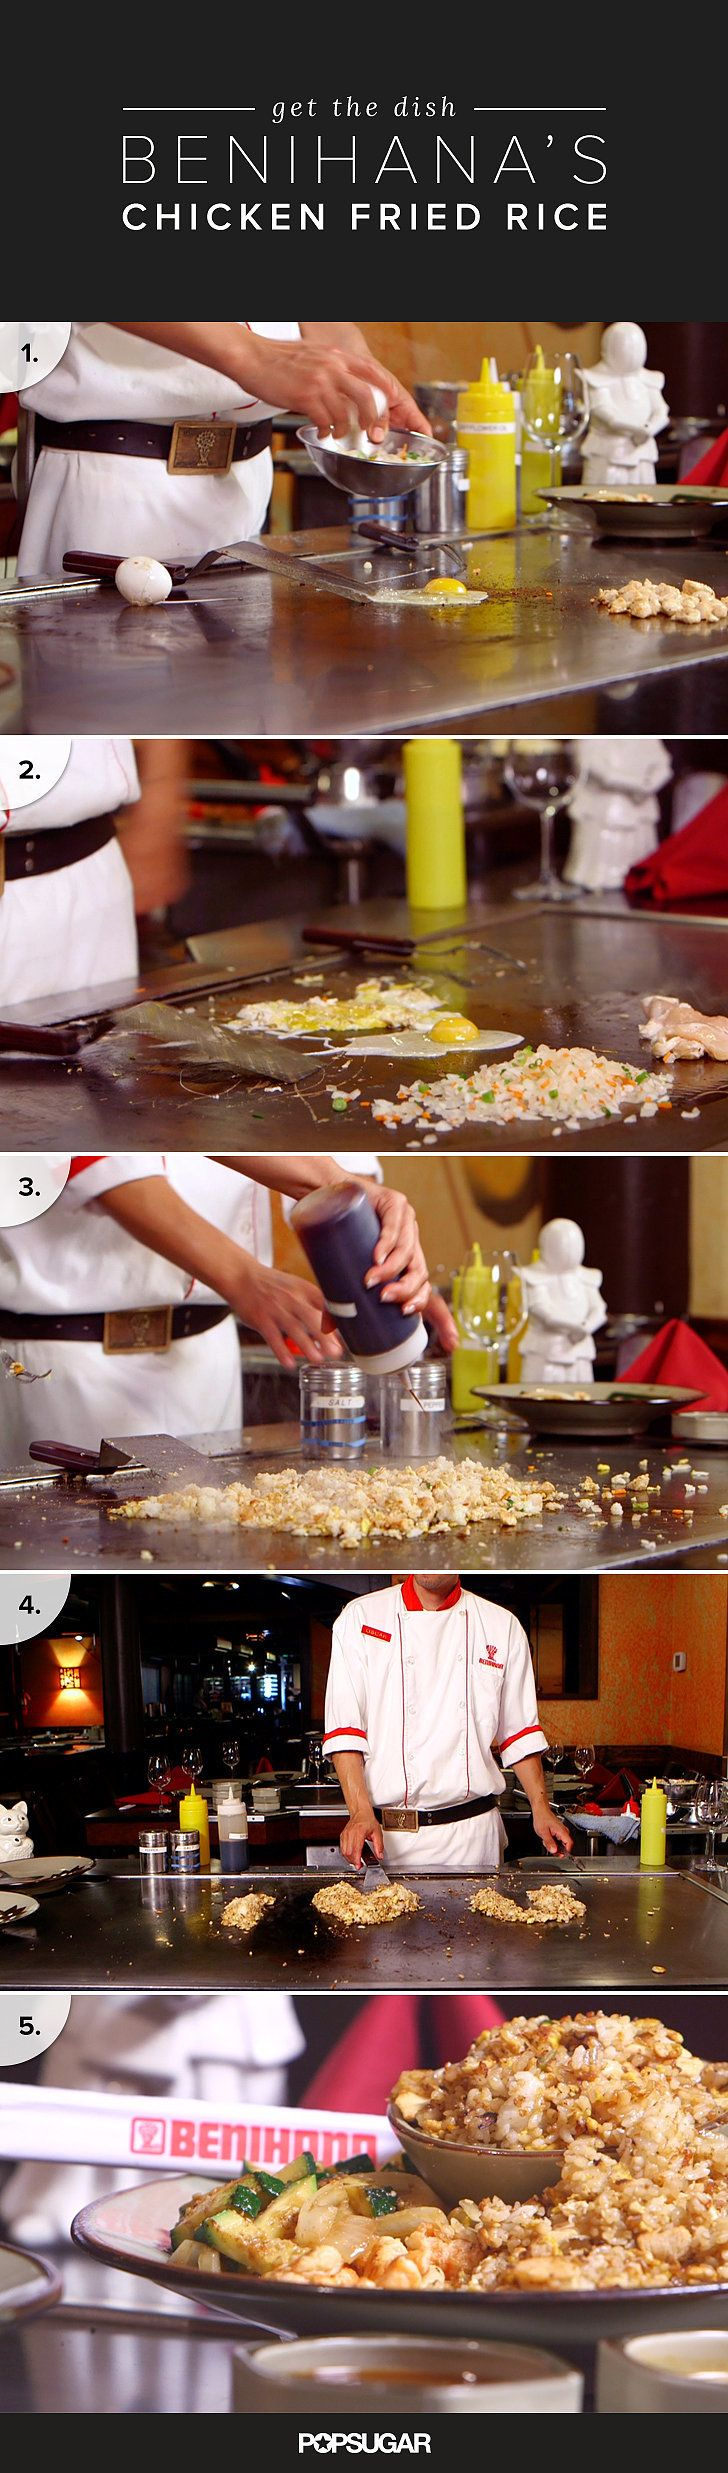 Make Benihana S Chicken Fried Rice In The Comfort Of Your Own Home With This Recipe Recipe Fried Rice Recipe Fried Rice Griddle Recipes